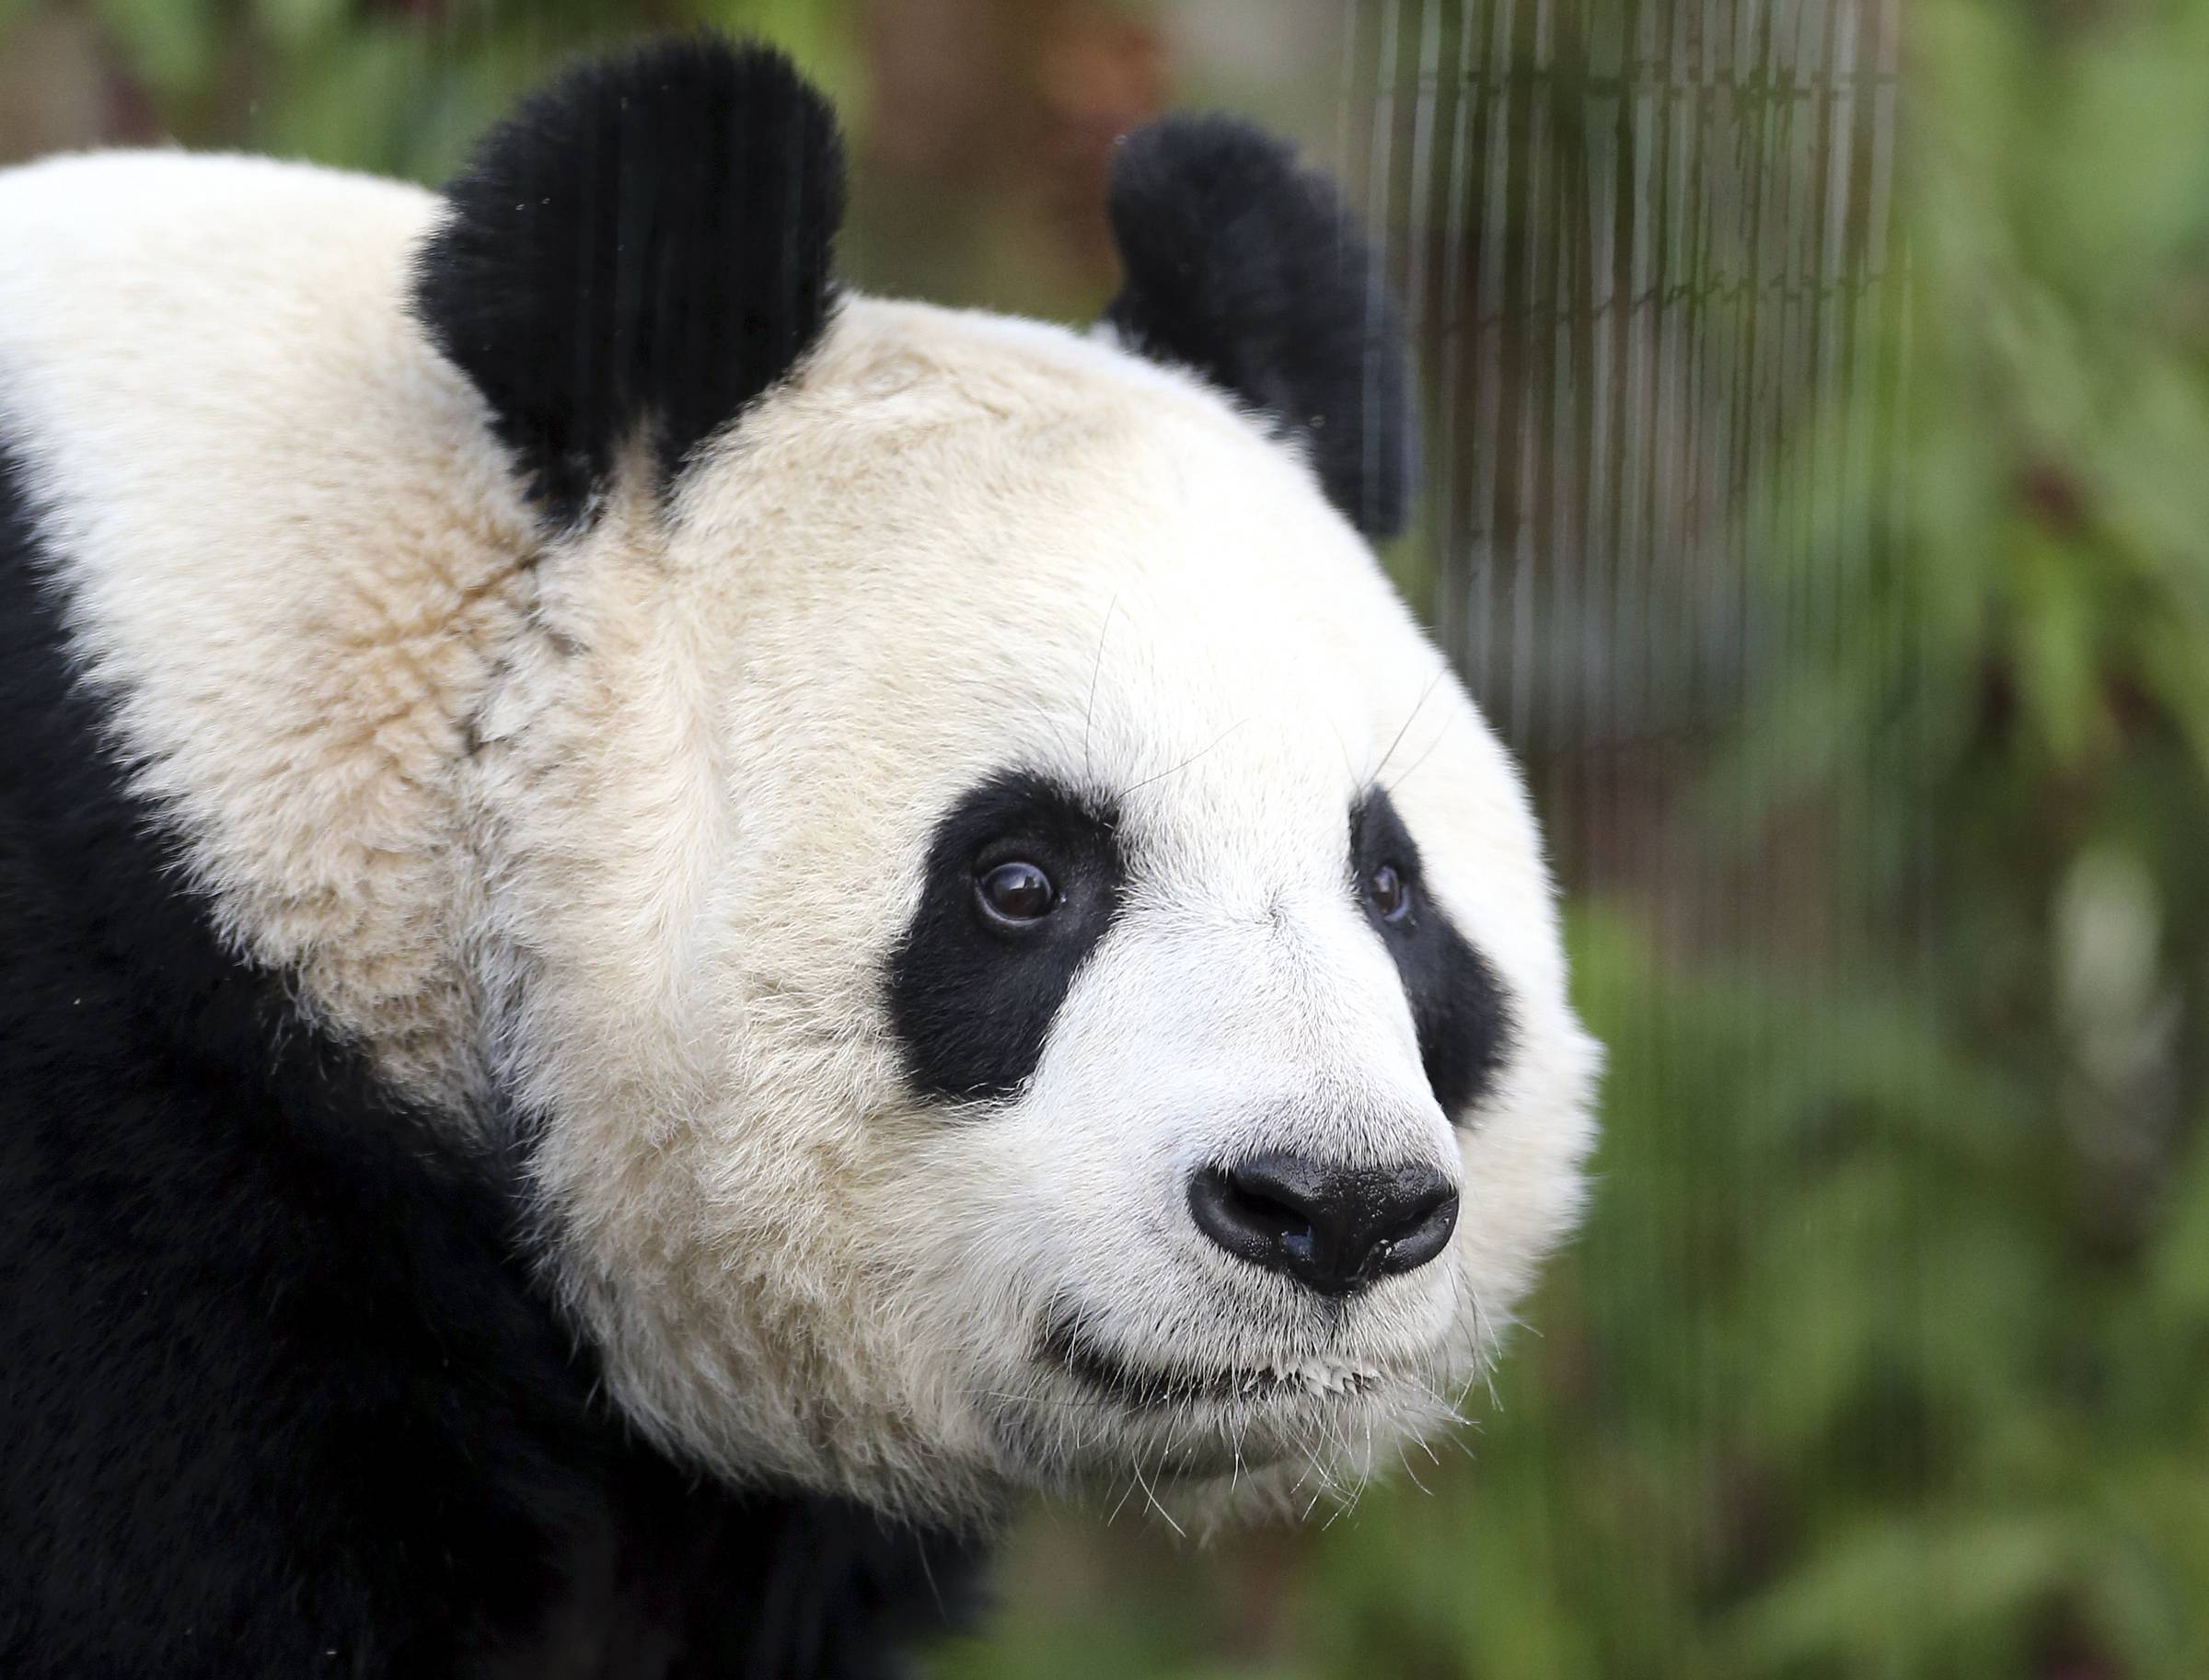 Officials at Edinburgh Zoo said Tuesday Aug. 12, 2014 they believe a female giant panda, Tian Tian, is finally pregnant after months of anticipation.